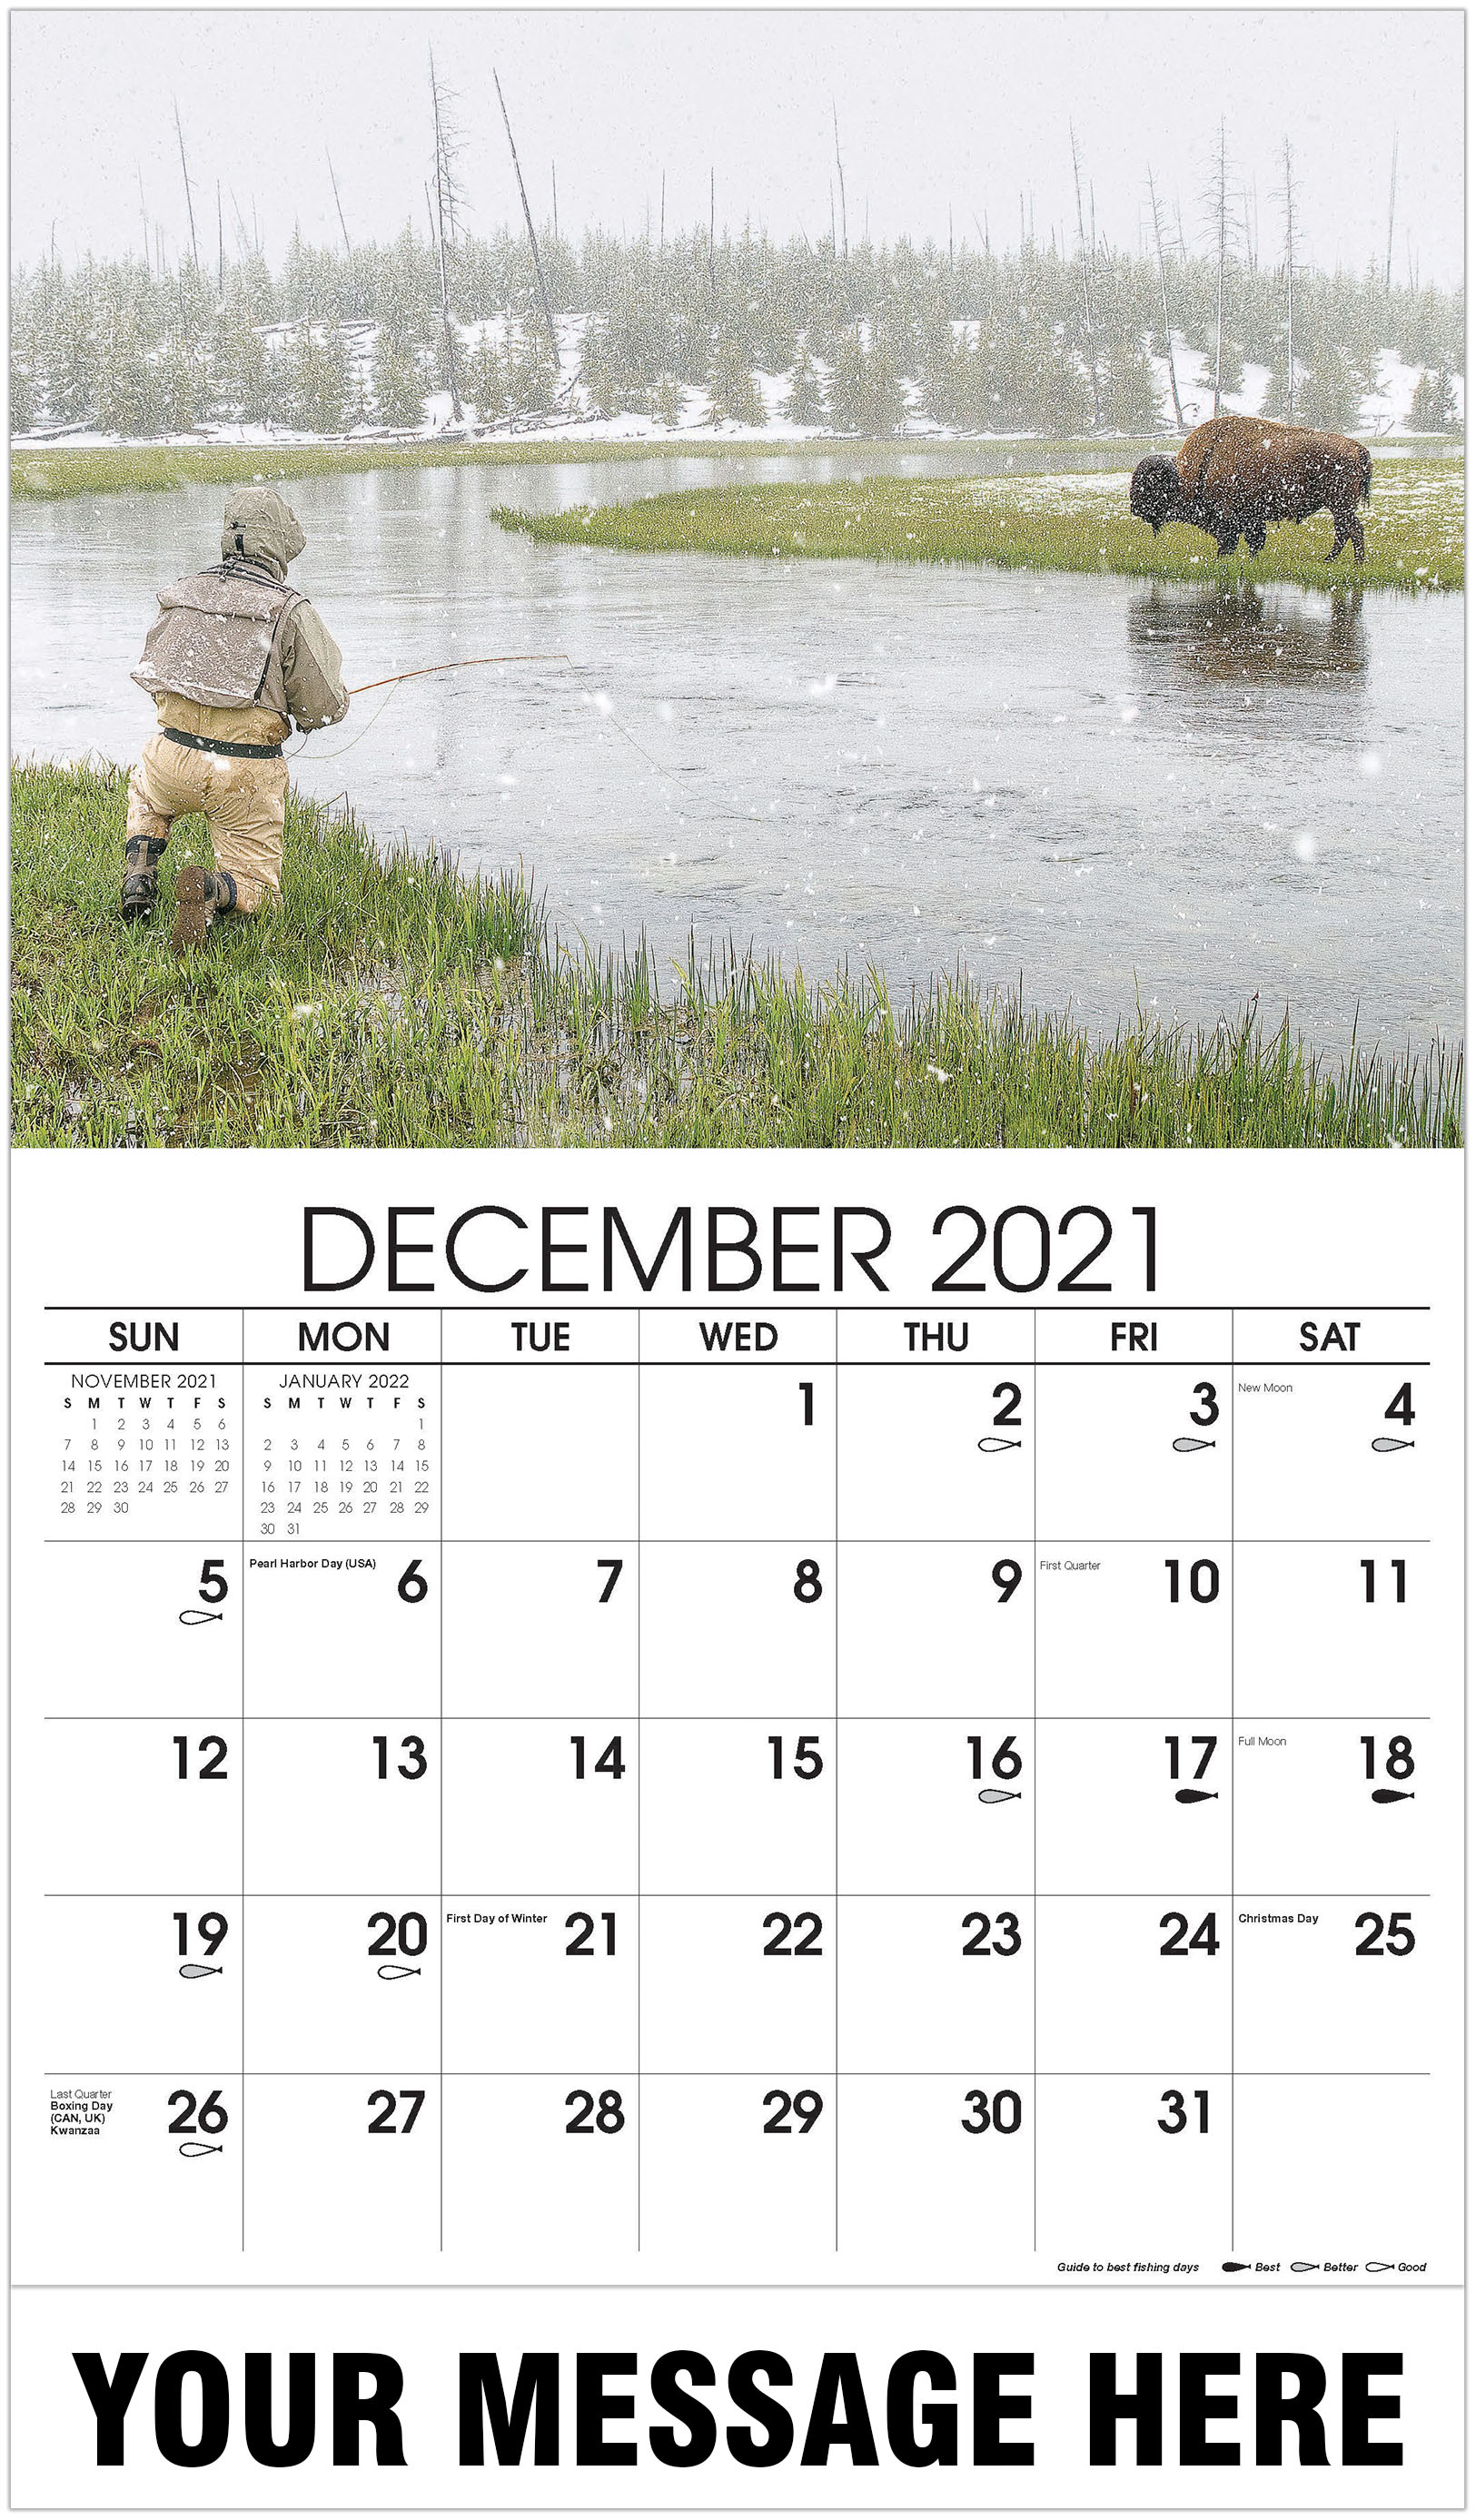 Fishing and a Bison - December 2021 - Fishing & Hunting 2021 Promotional Calendar